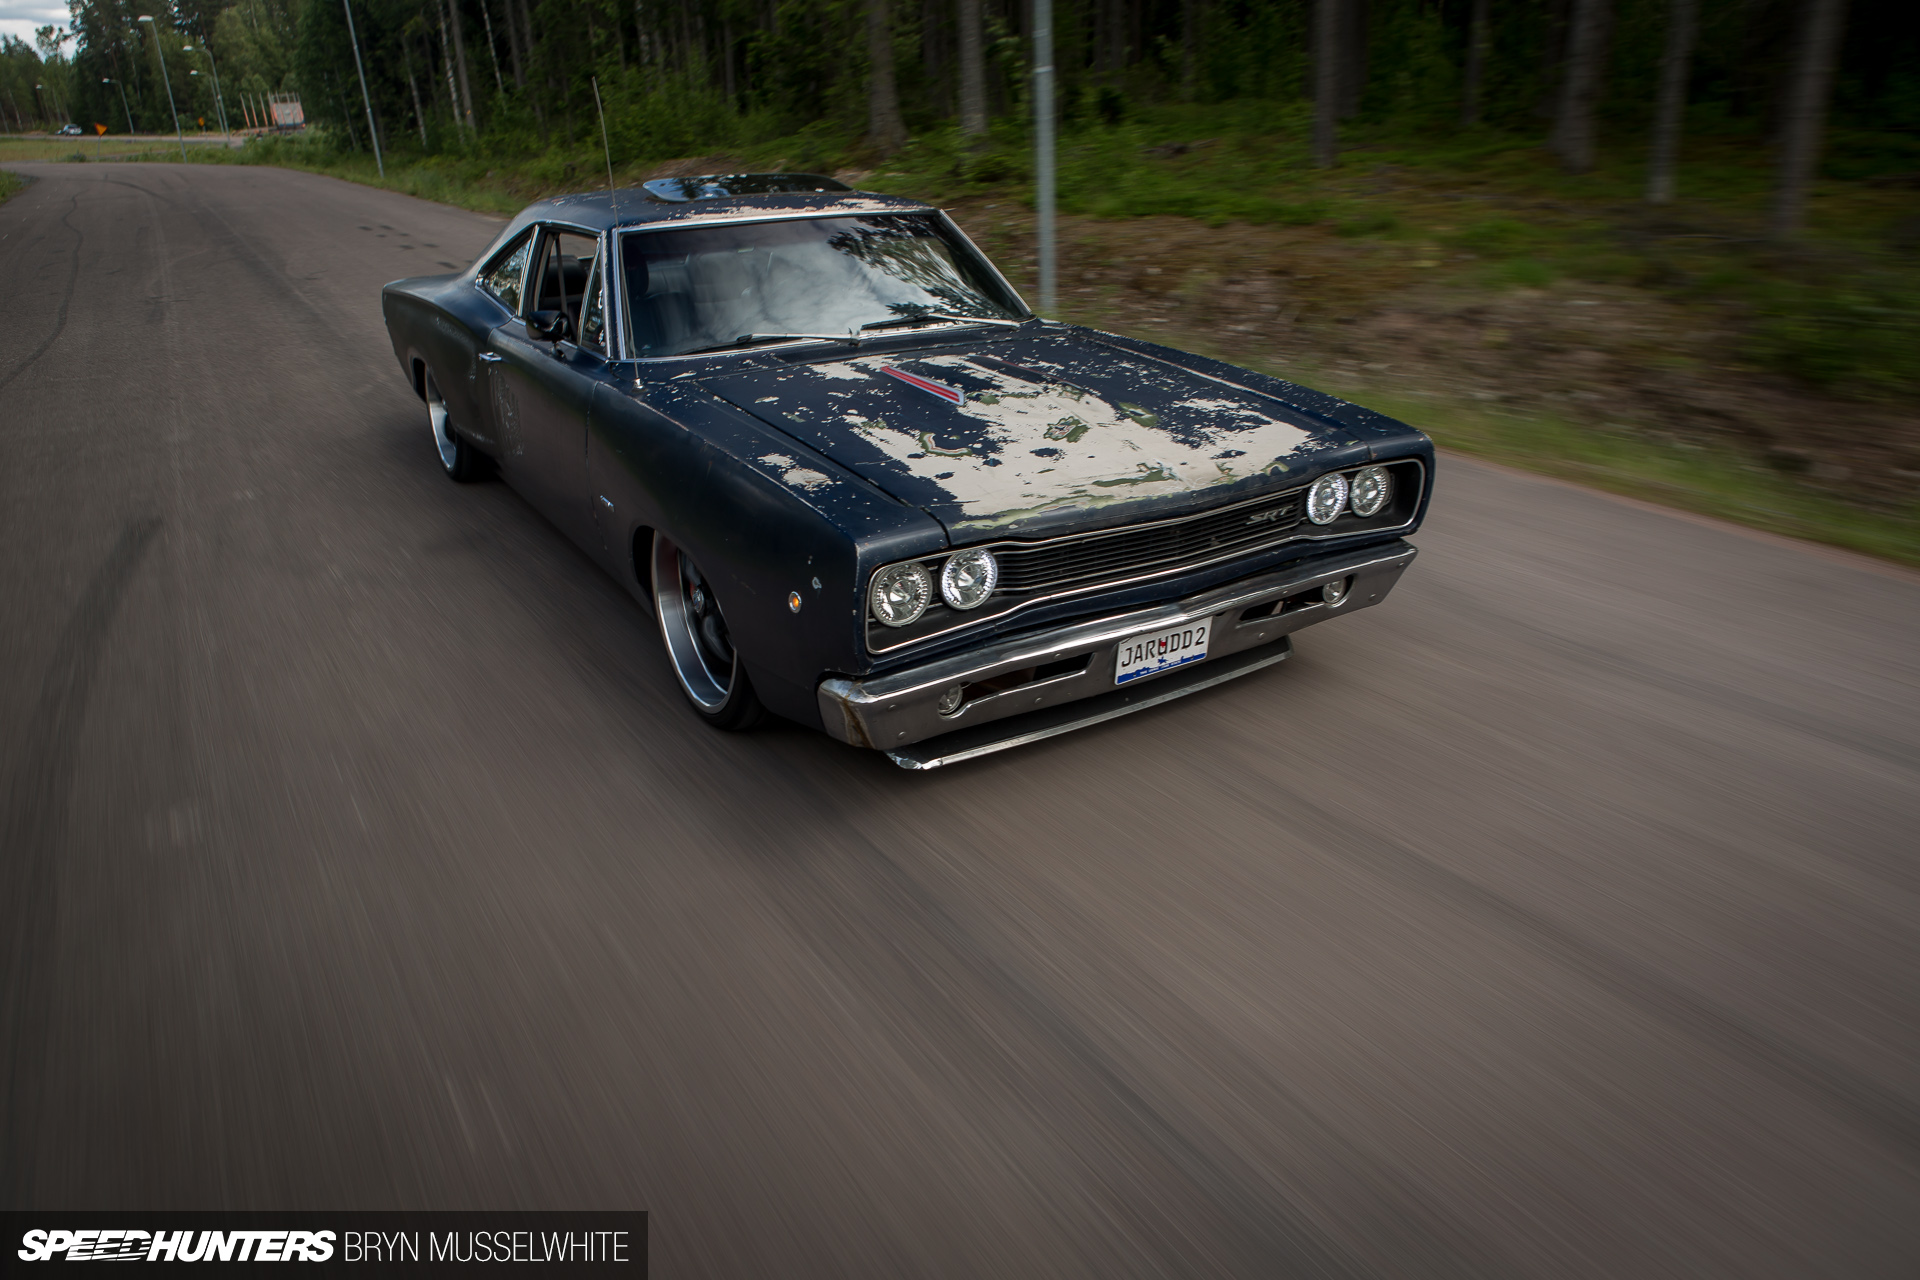 Gallery Beauty The Beast Within 68 Dodge Coronet Srt Ratrod Charger Wiring Diagram Jaruds Bil Se Crazy By Steven